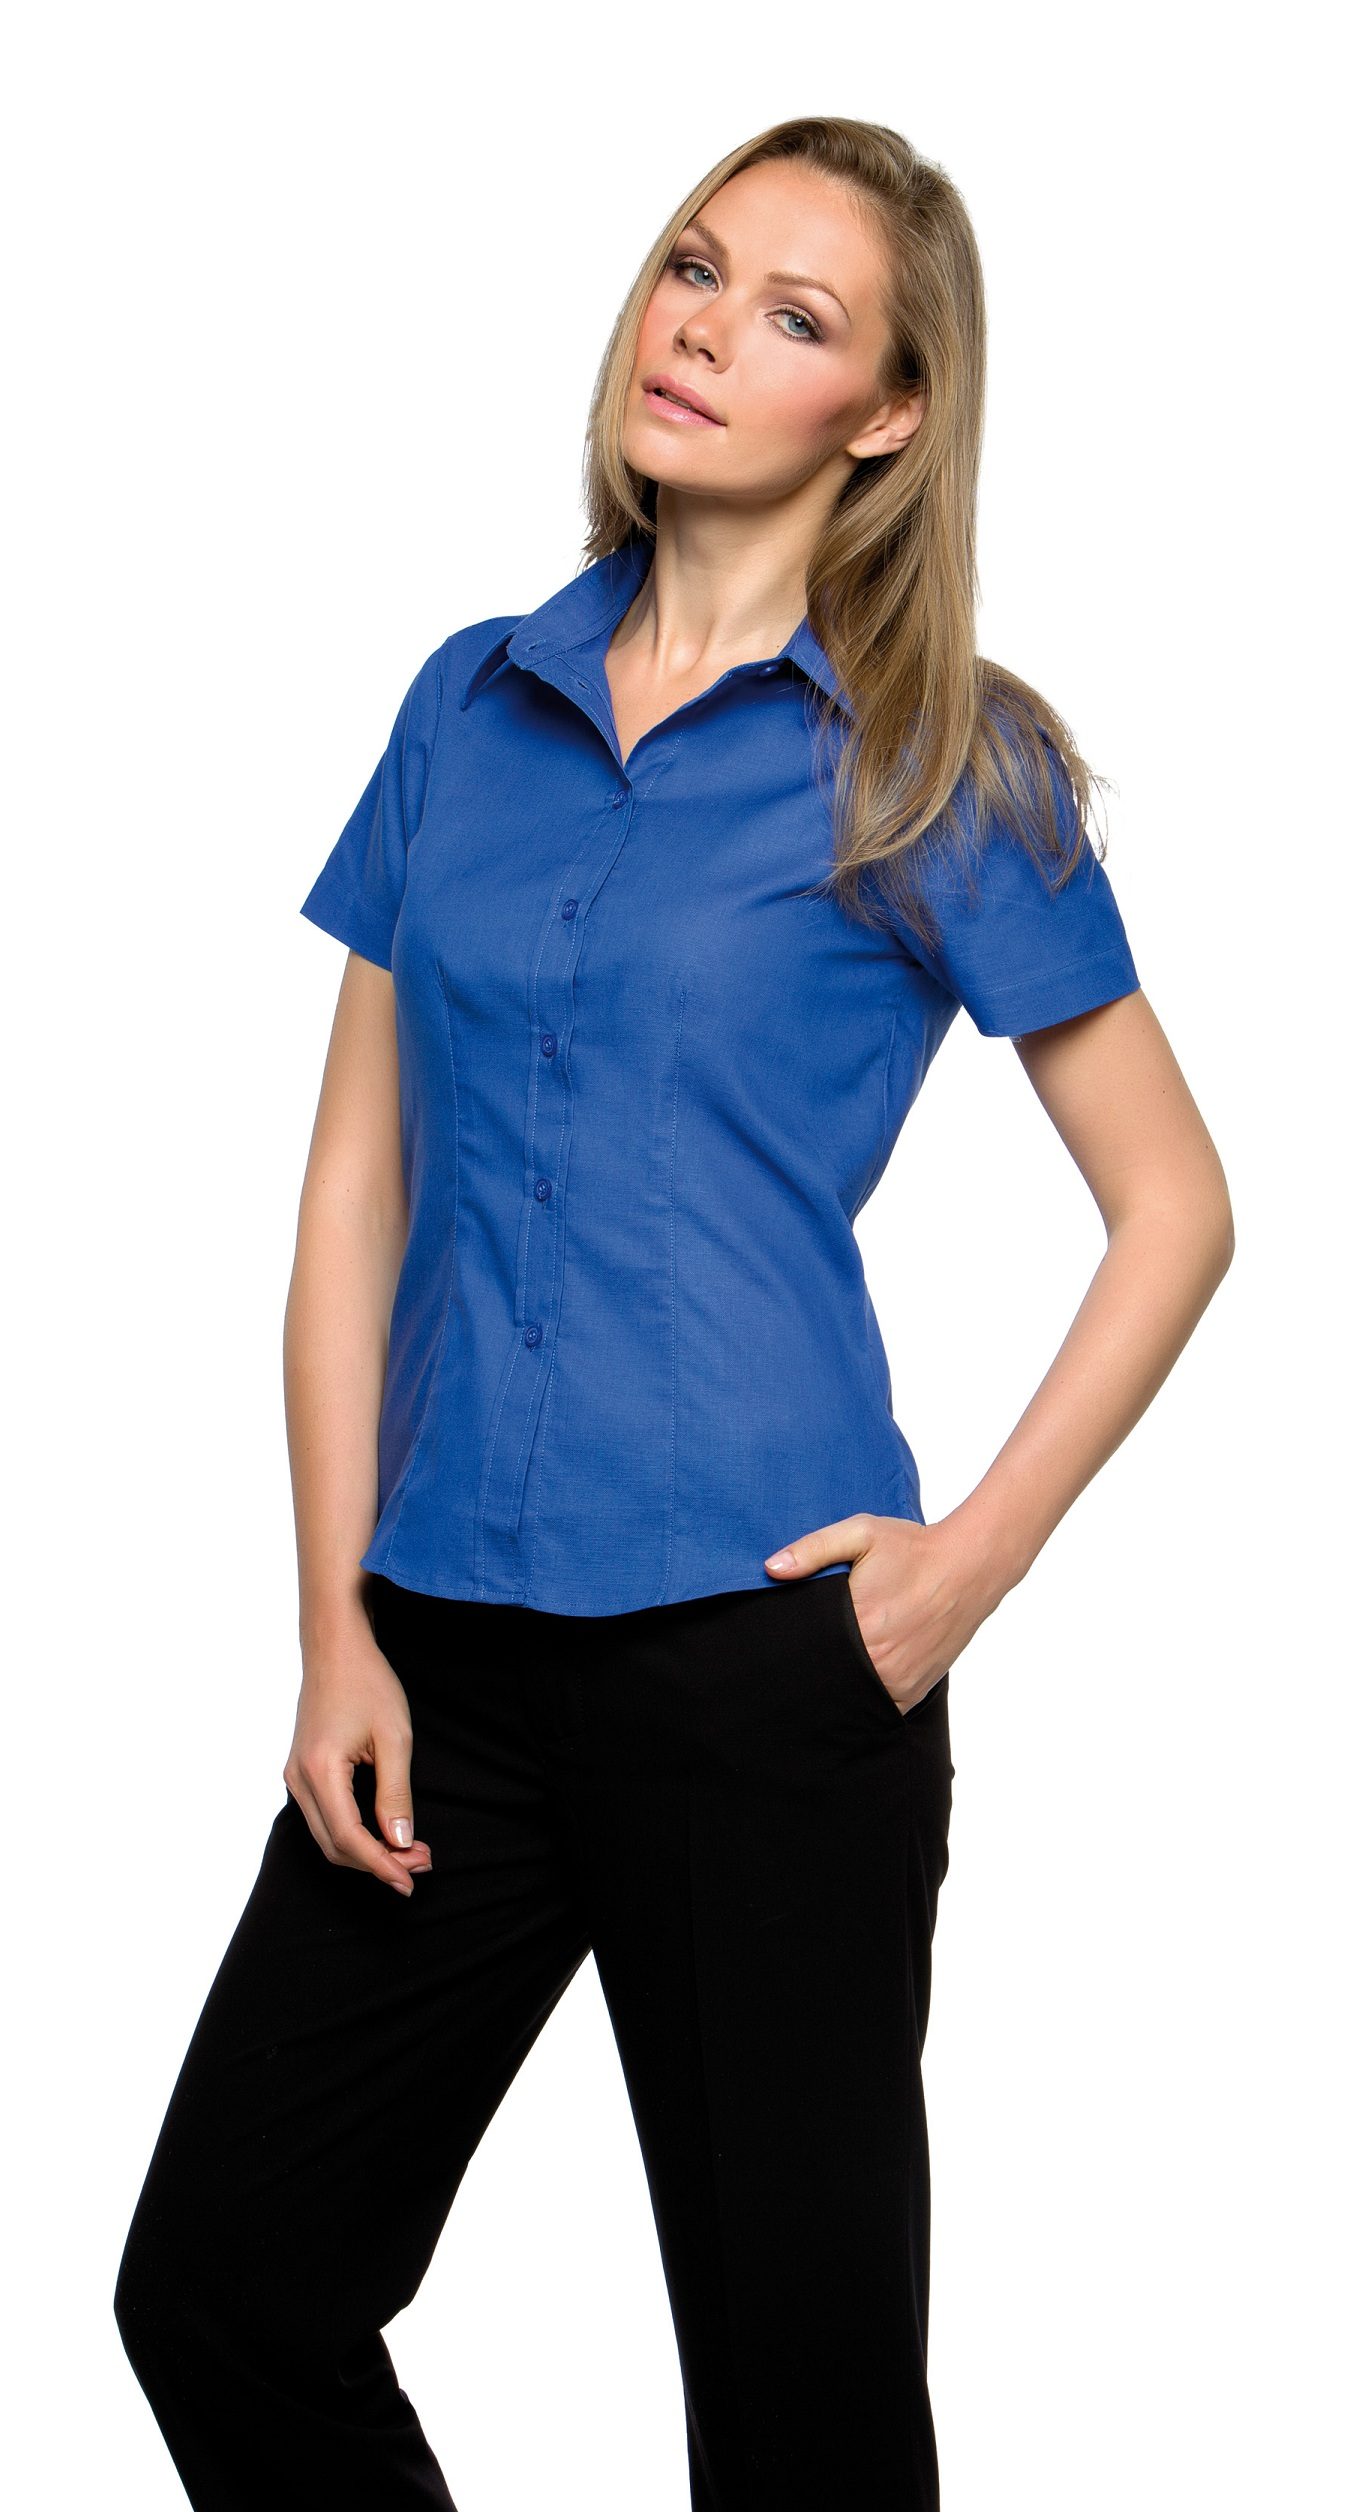 KK360 Kustom Kit Workwear Womens Oxford Shirt Short Sleeve